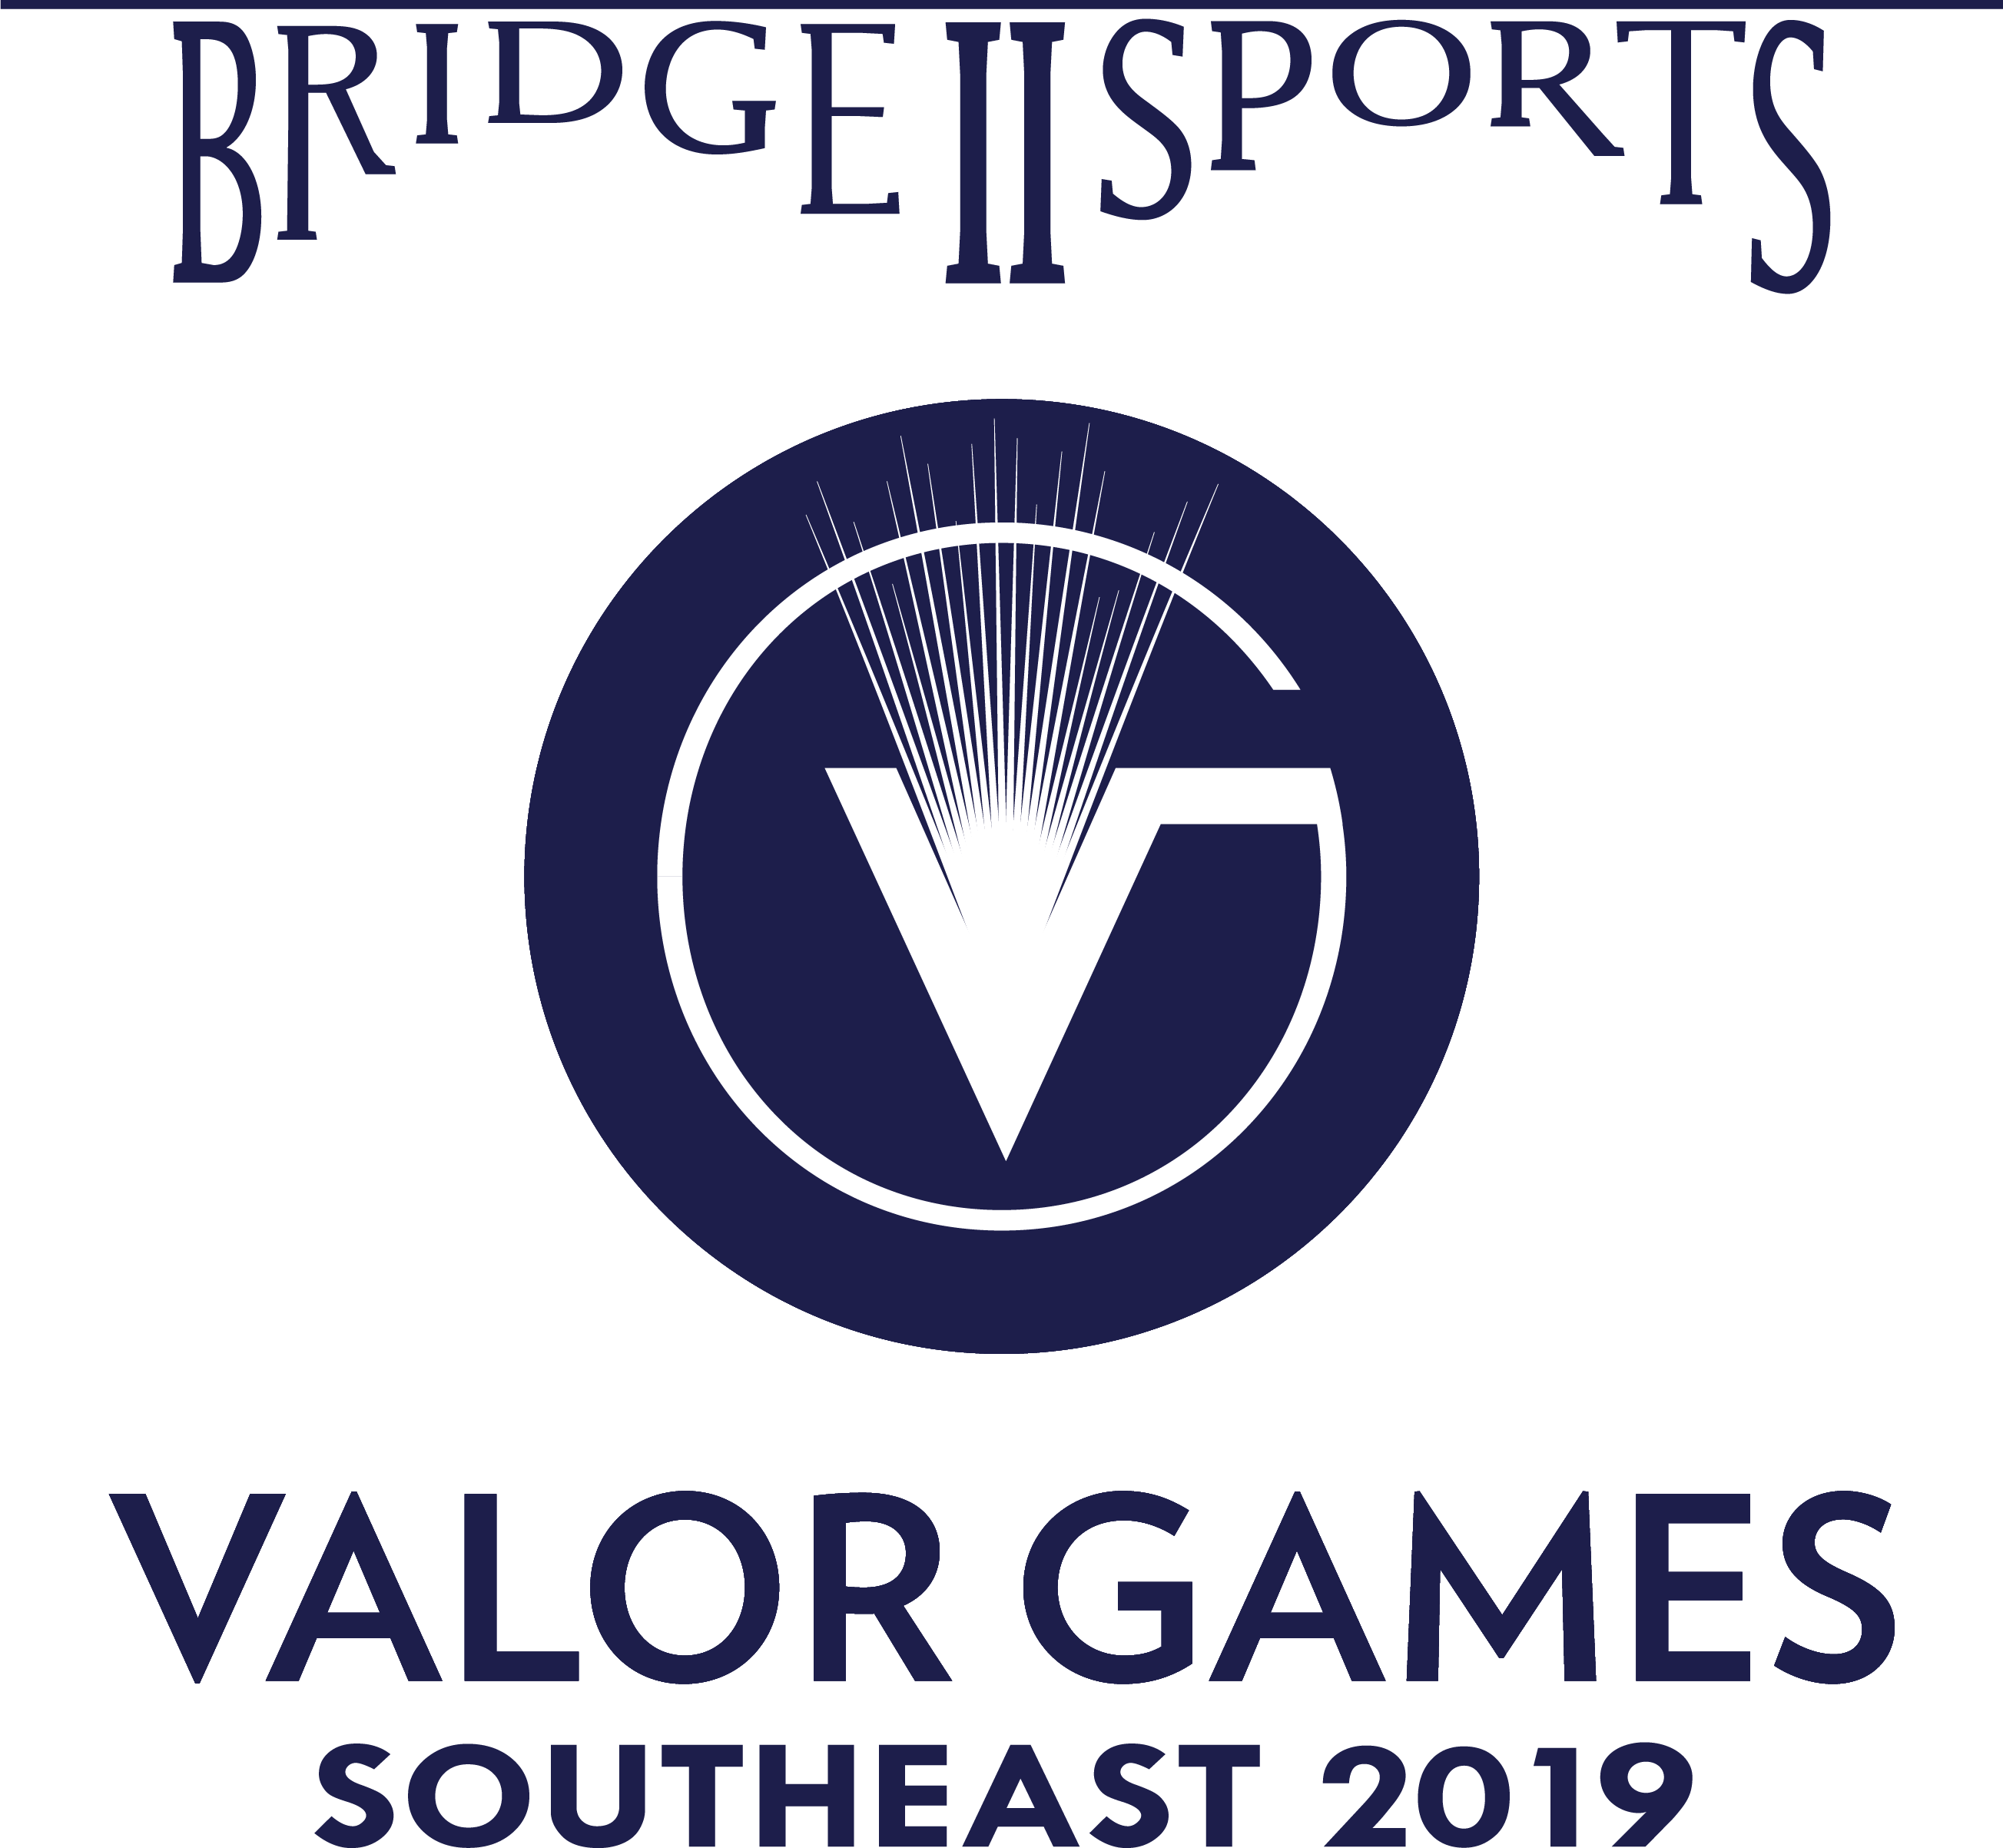 Valor Games Southeast 2019